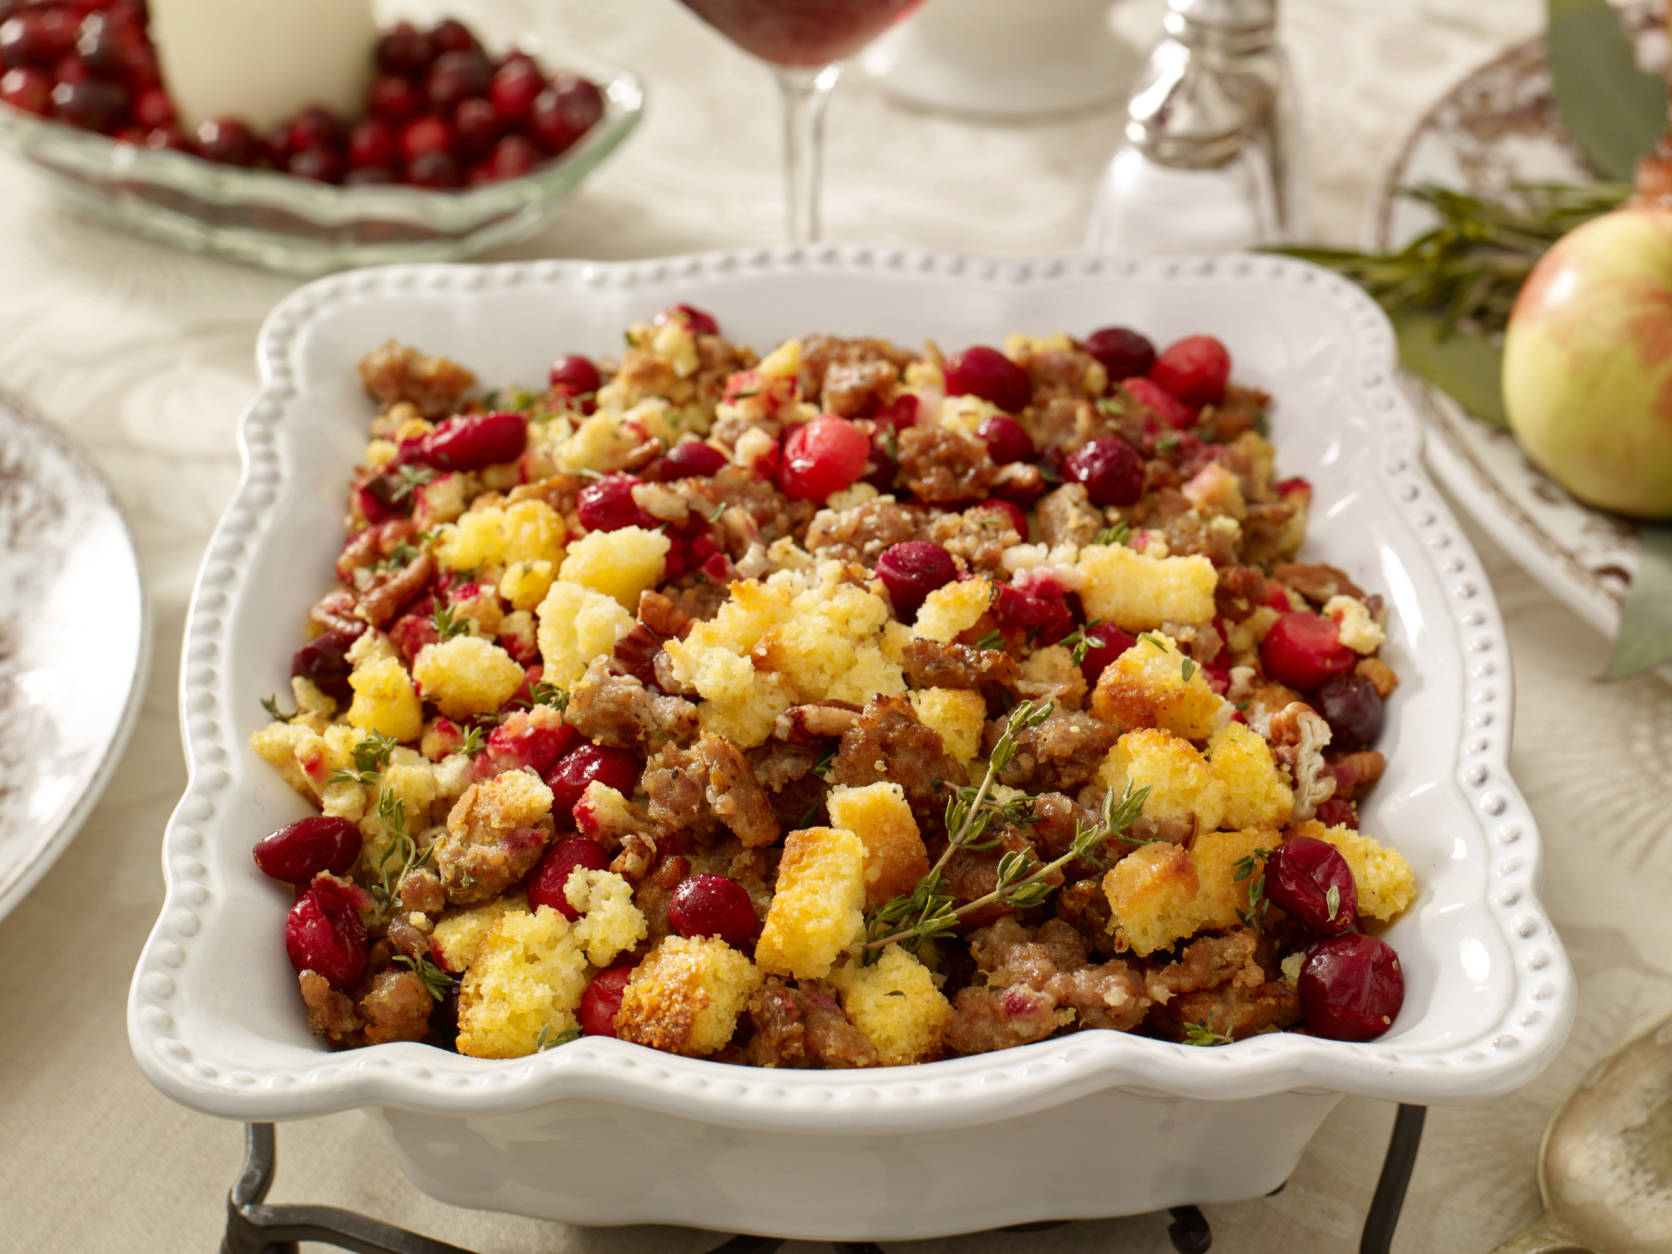 IMAGE DISTRIBUTED FOR OCEAN SPRAY - Try adding fresh cranberries for a twist on Cornbread Stuffing this Thanksgiving. For the full recipe, visit http://www.oceanspray.com/FamilyAffair/. (Ocean Spray via AP Images)